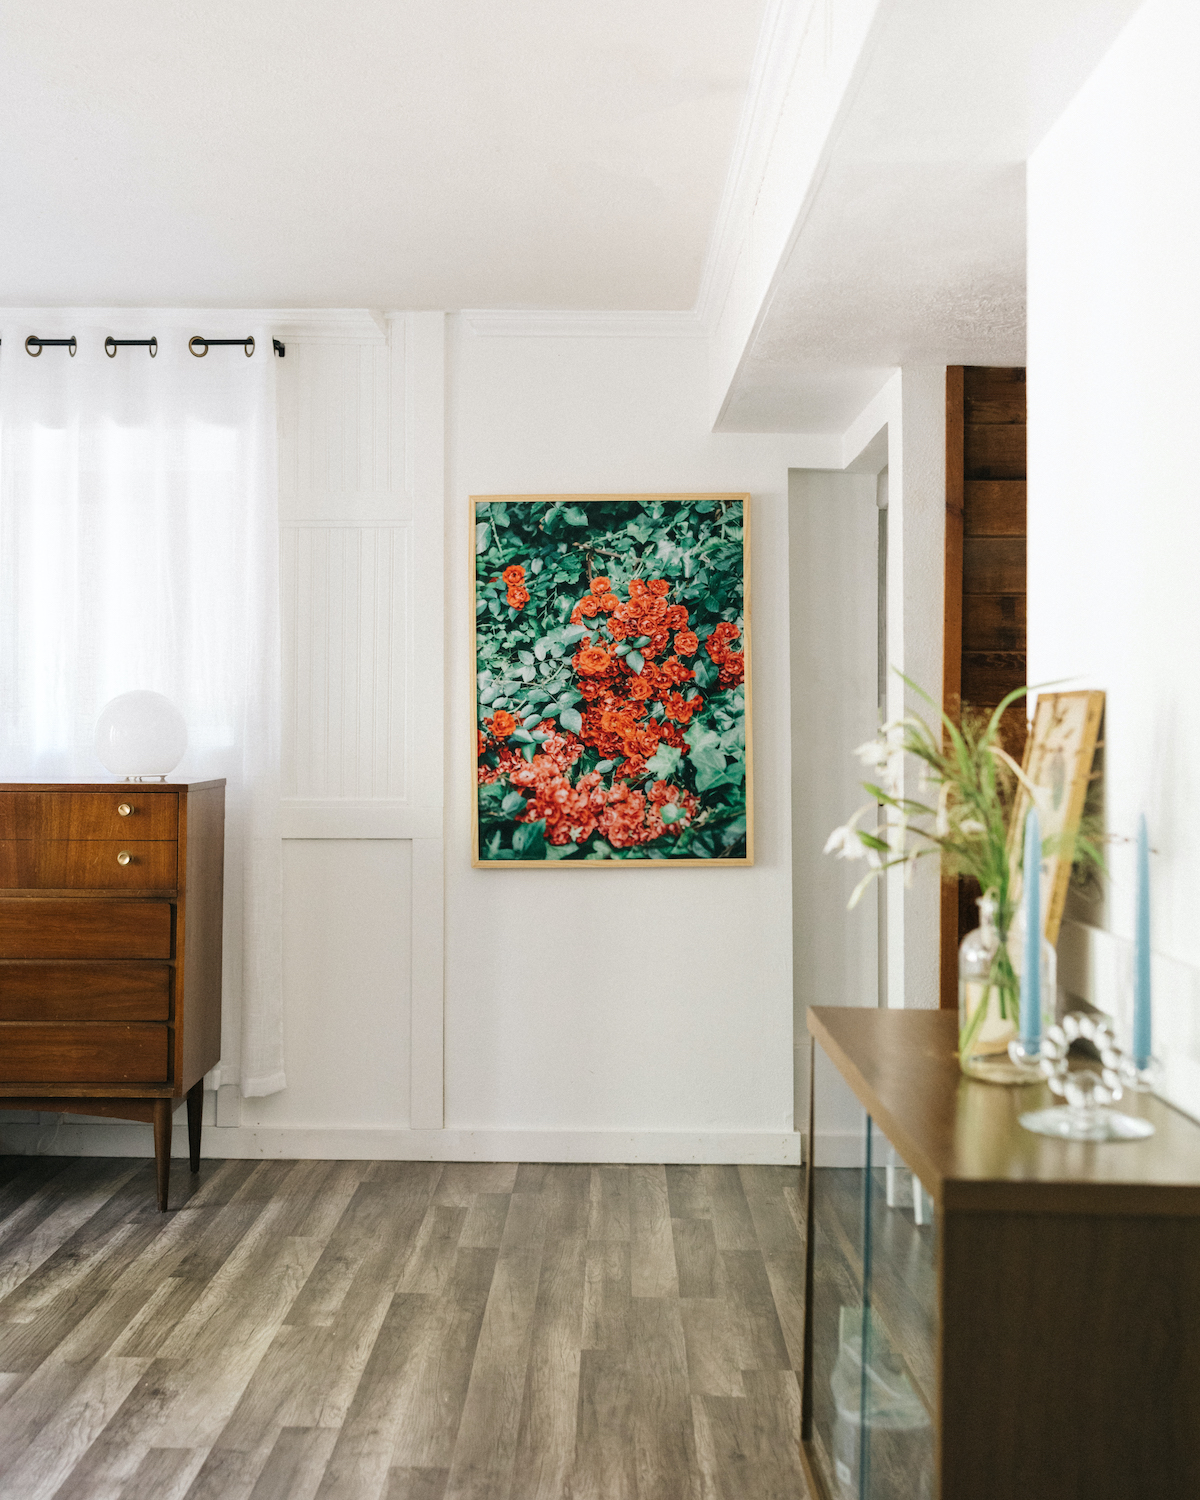 Photo by Kelly Kang of large framed photo featuring red flowers in minimalist roomscape